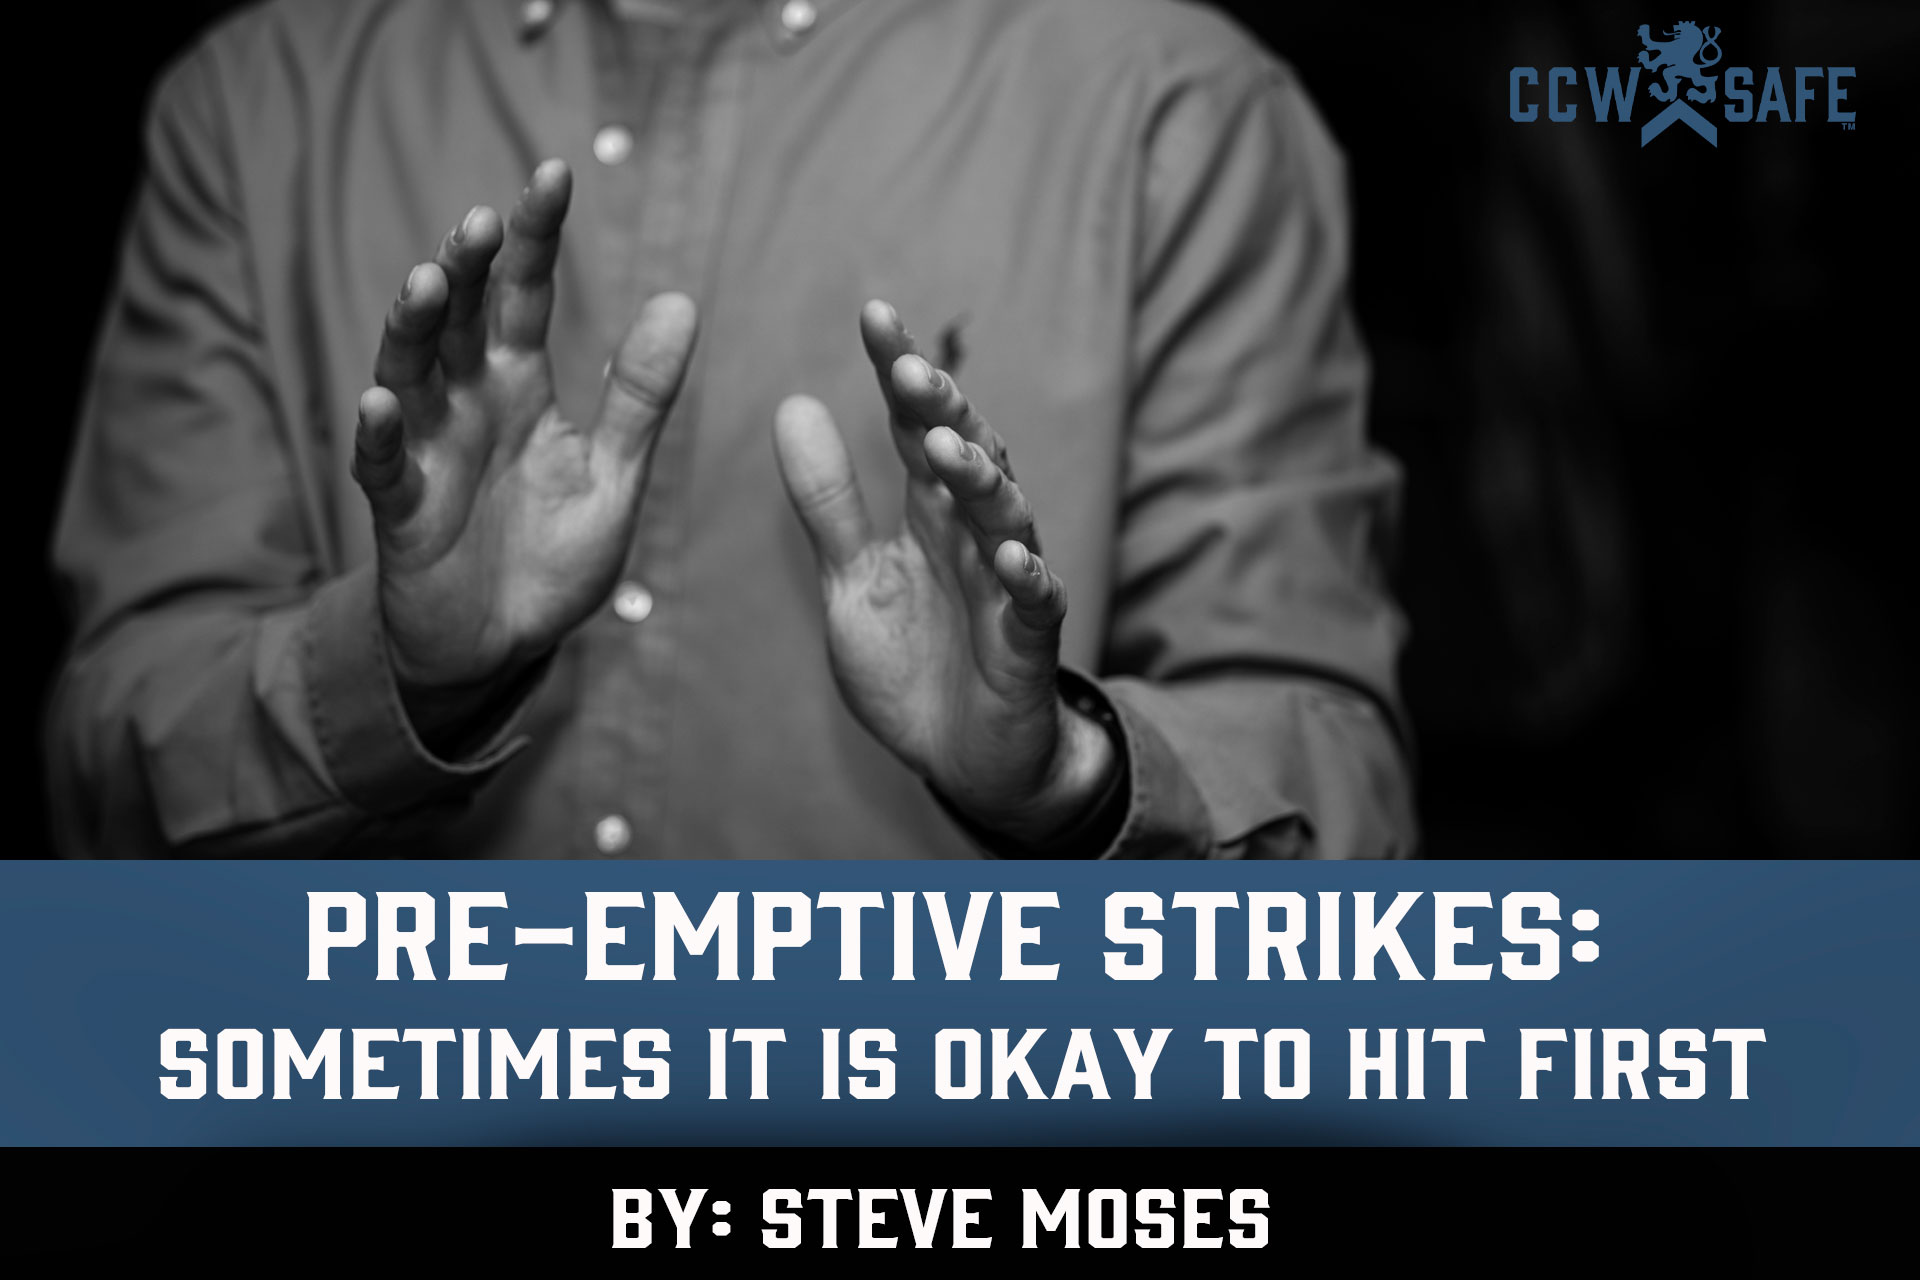 PRE-EMPTIVE STRIKES: SOMETIMES IT IS OKAY TO HIT FIRST